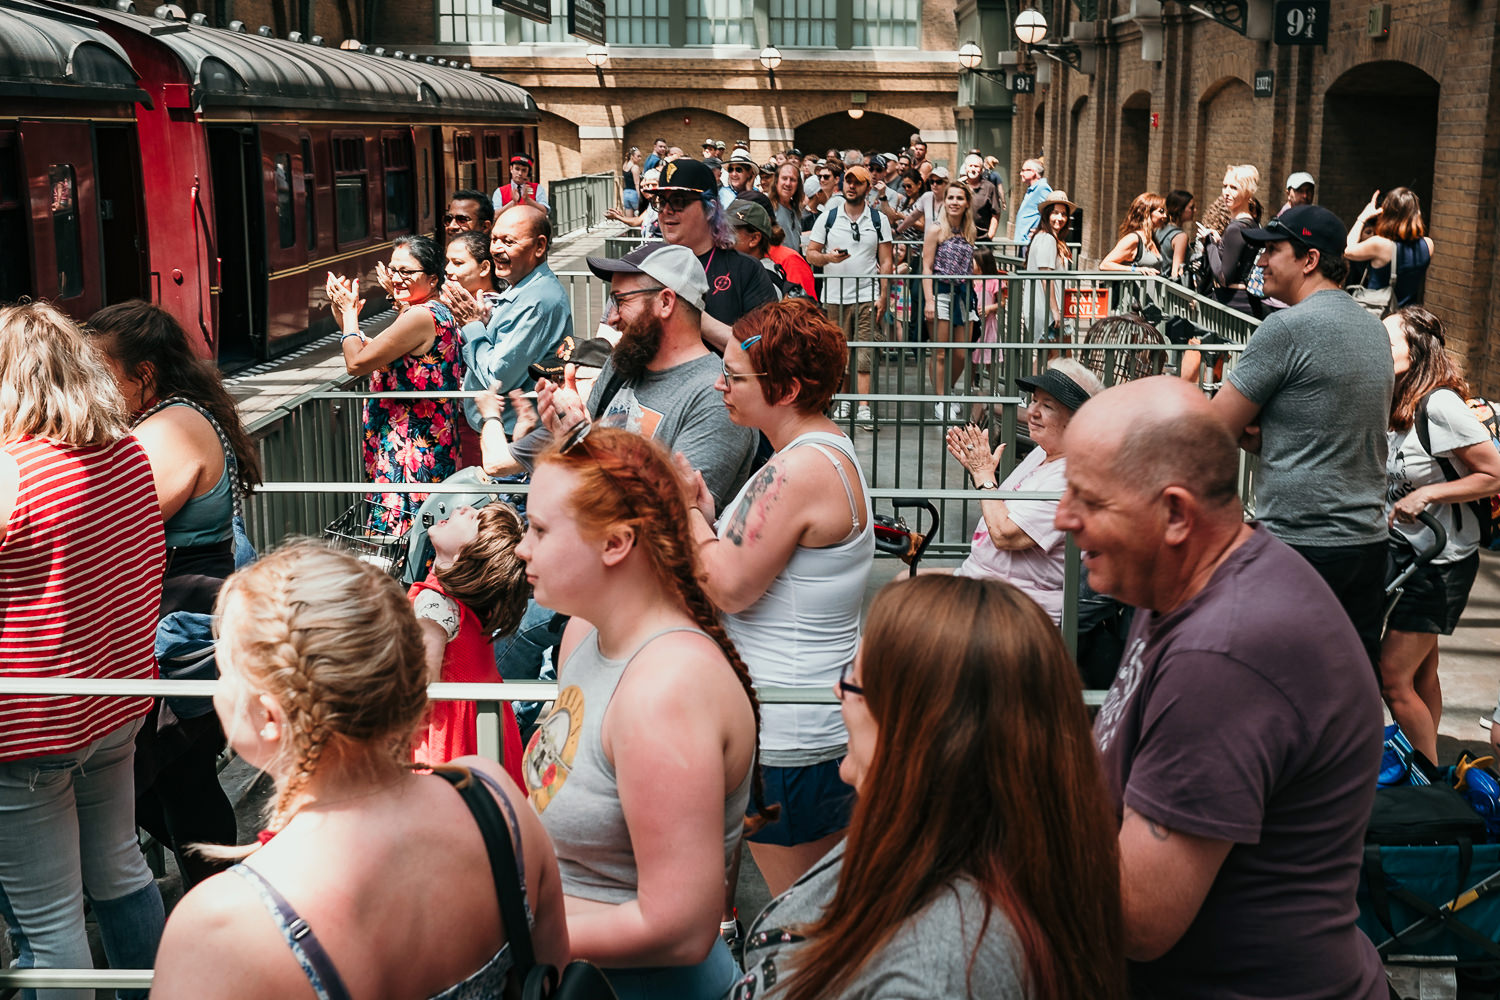 crowd at hogwarts express applauding the newly married couple